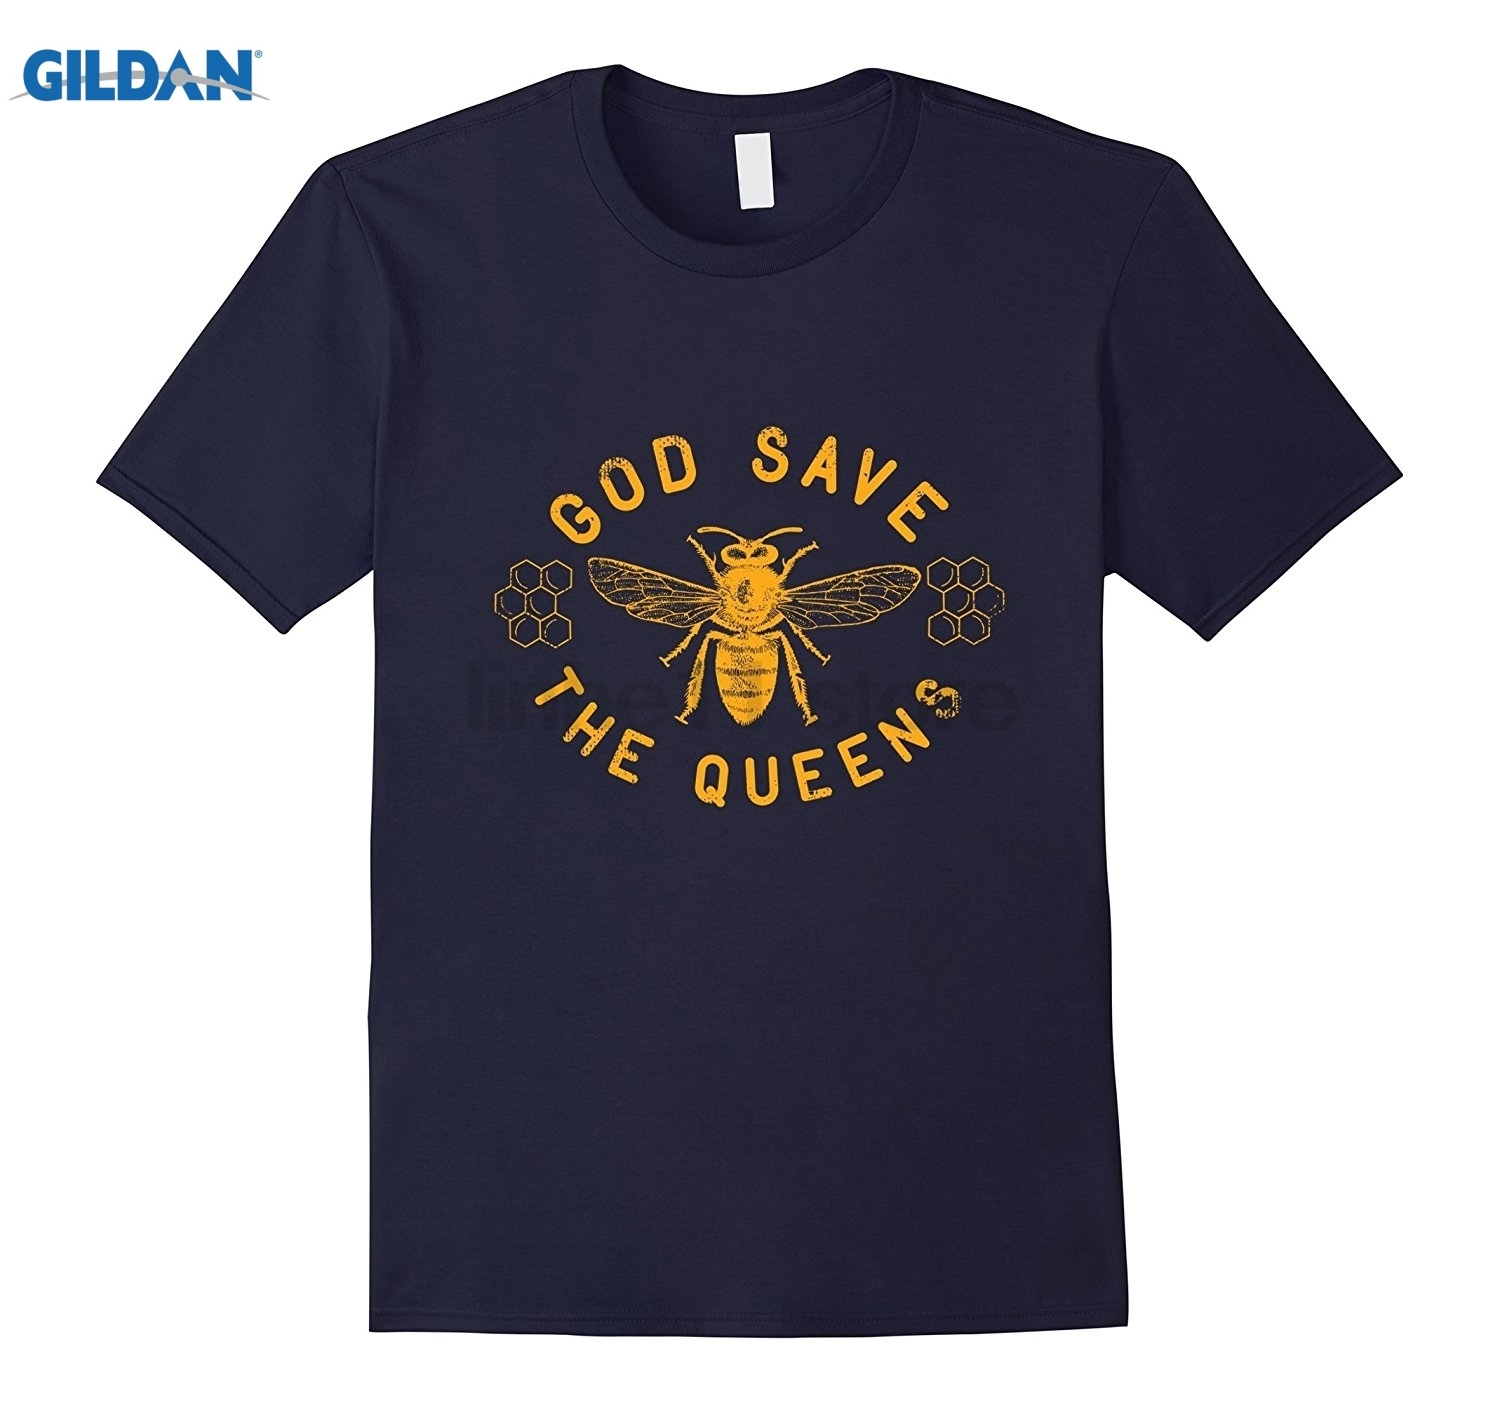 GILDAN Bee Lovers Tee Shirt for the Natural Organic Gardner Womens T-shirt ...